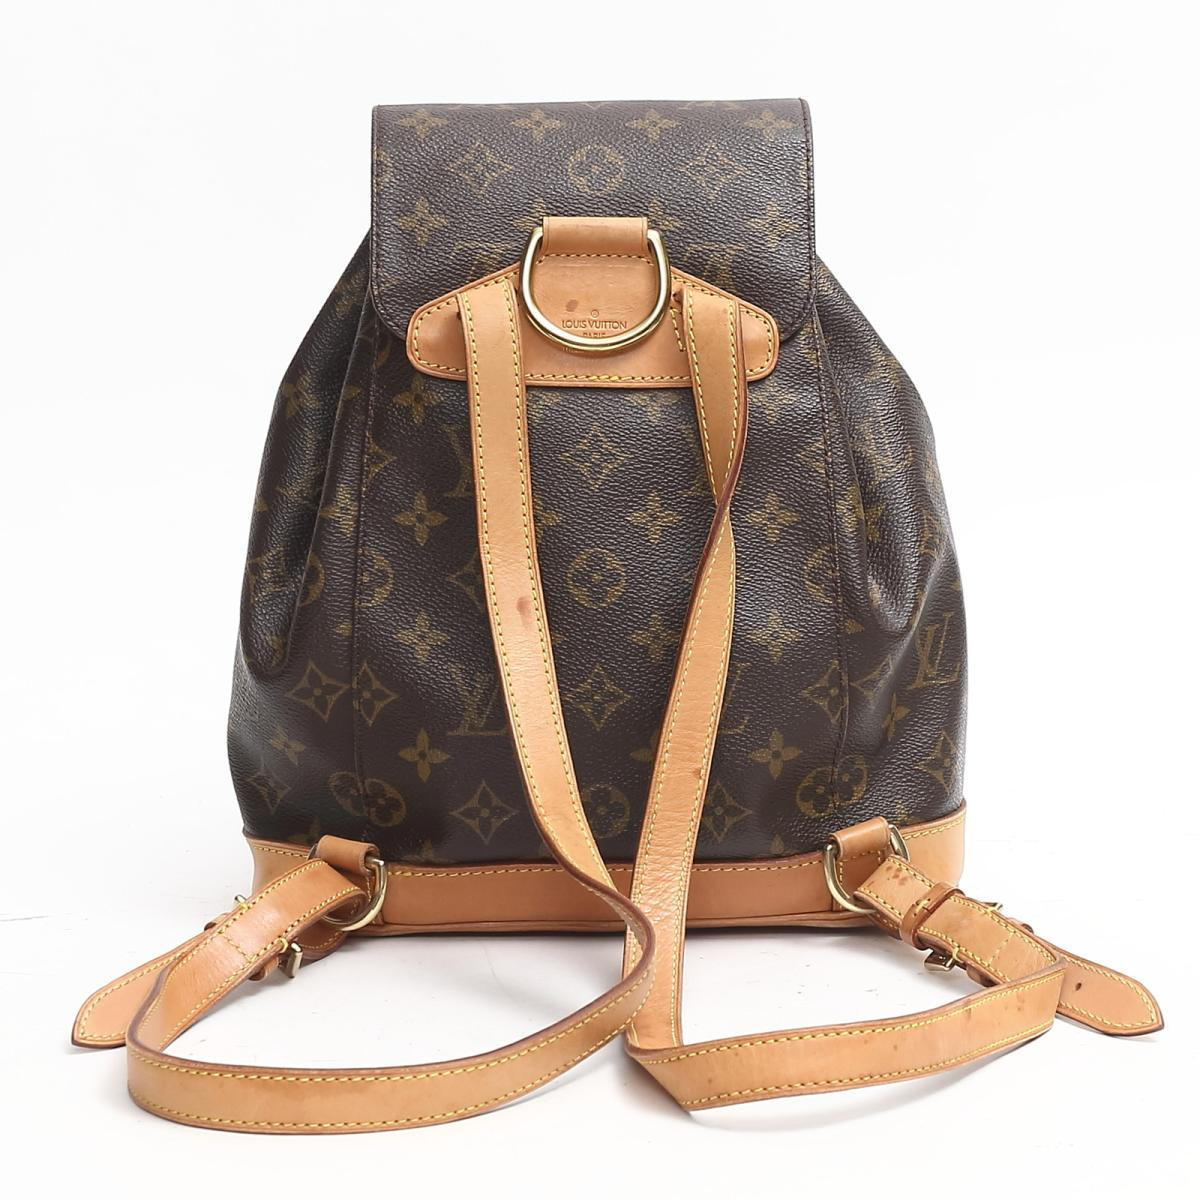 5a6aacca90ad BRANDOFF  Auth LOUIS VUITTON Monsuri MM Backpack M51136 Monogram Used  Vintage